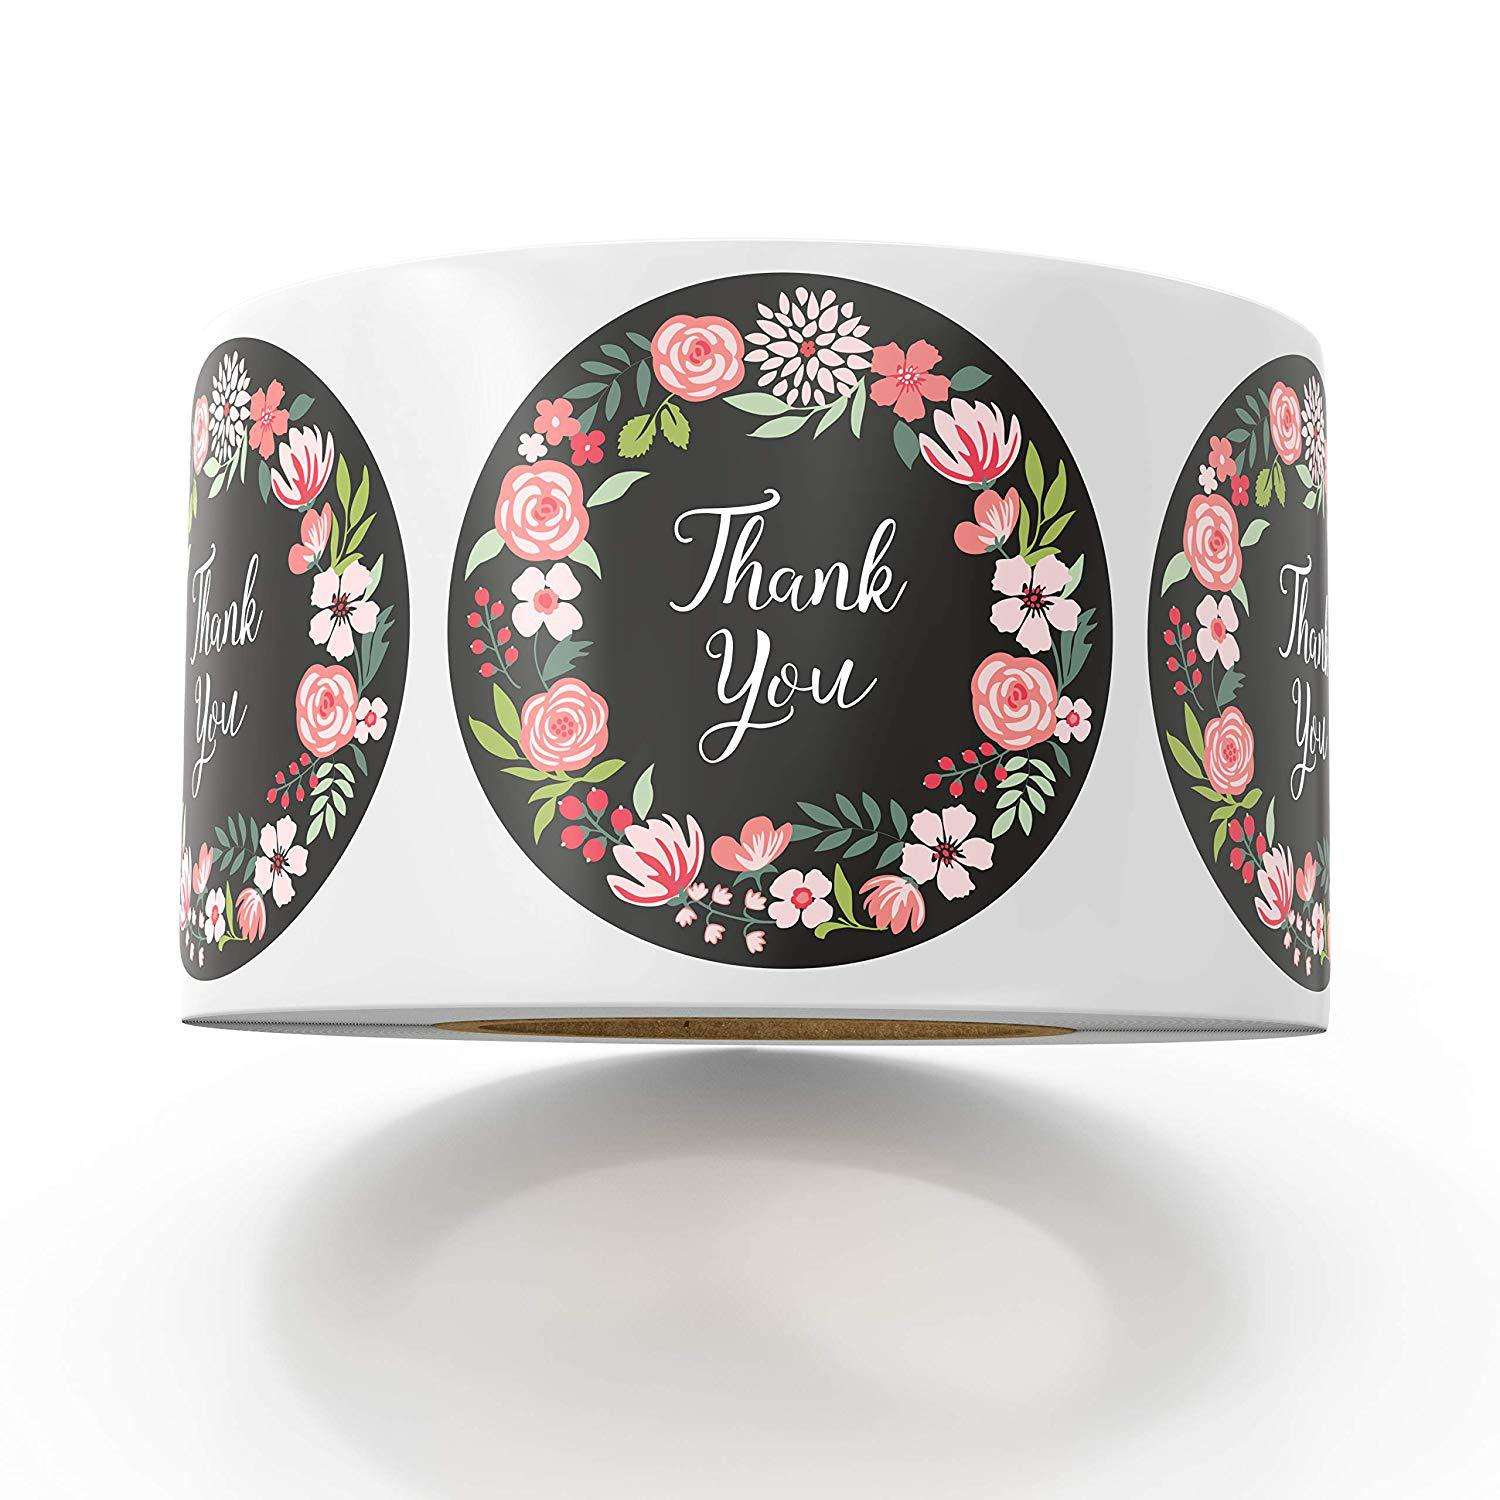 Custom Stickers Handmade Craft Thank You Stickers Waterproof Seal Label Sticker Adhesive Packaging Labels